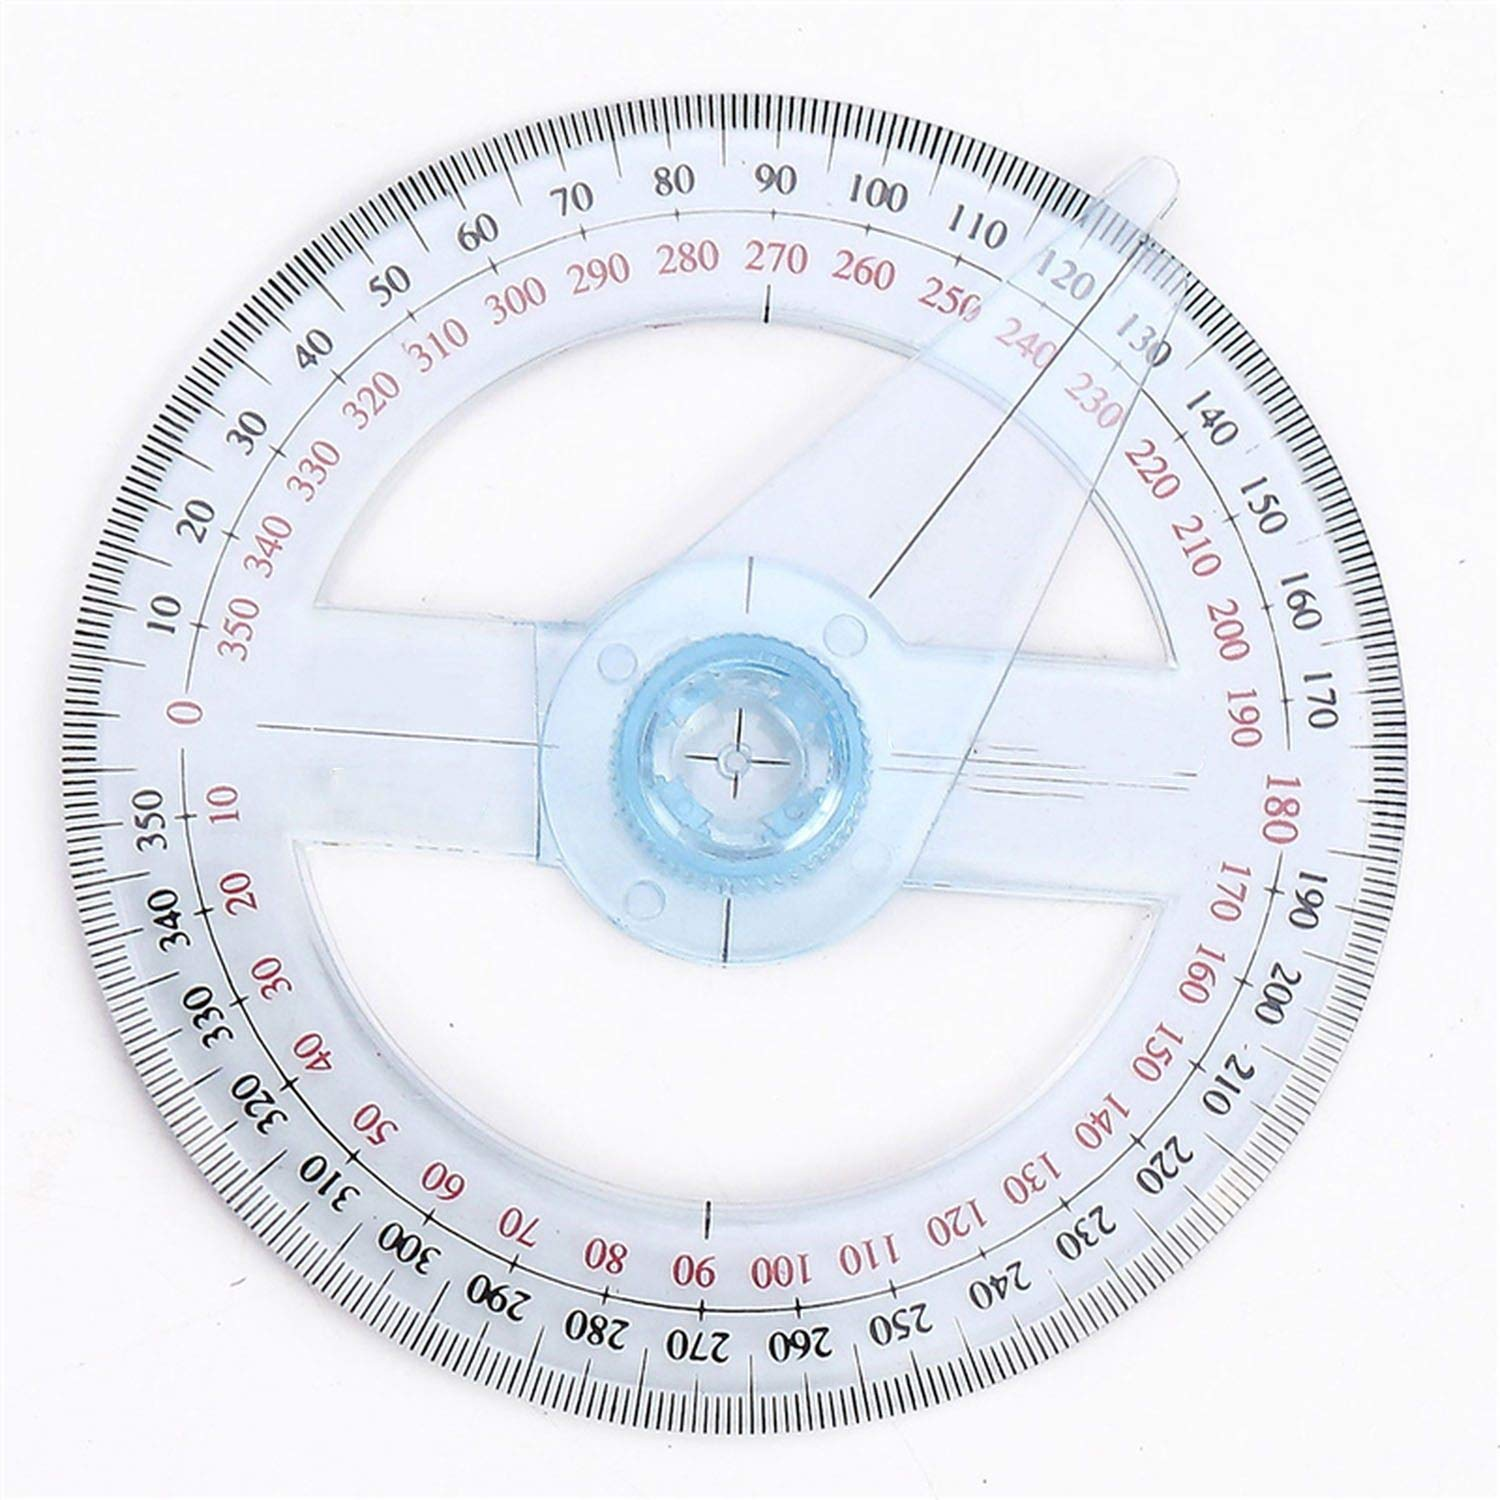 Portable Diameter of 10cm Plastic 360 Degree Pointer Protractor Ruler Angle Swing Arm for School Office Supplies,1 Pc by lucky-eye (Image #2)